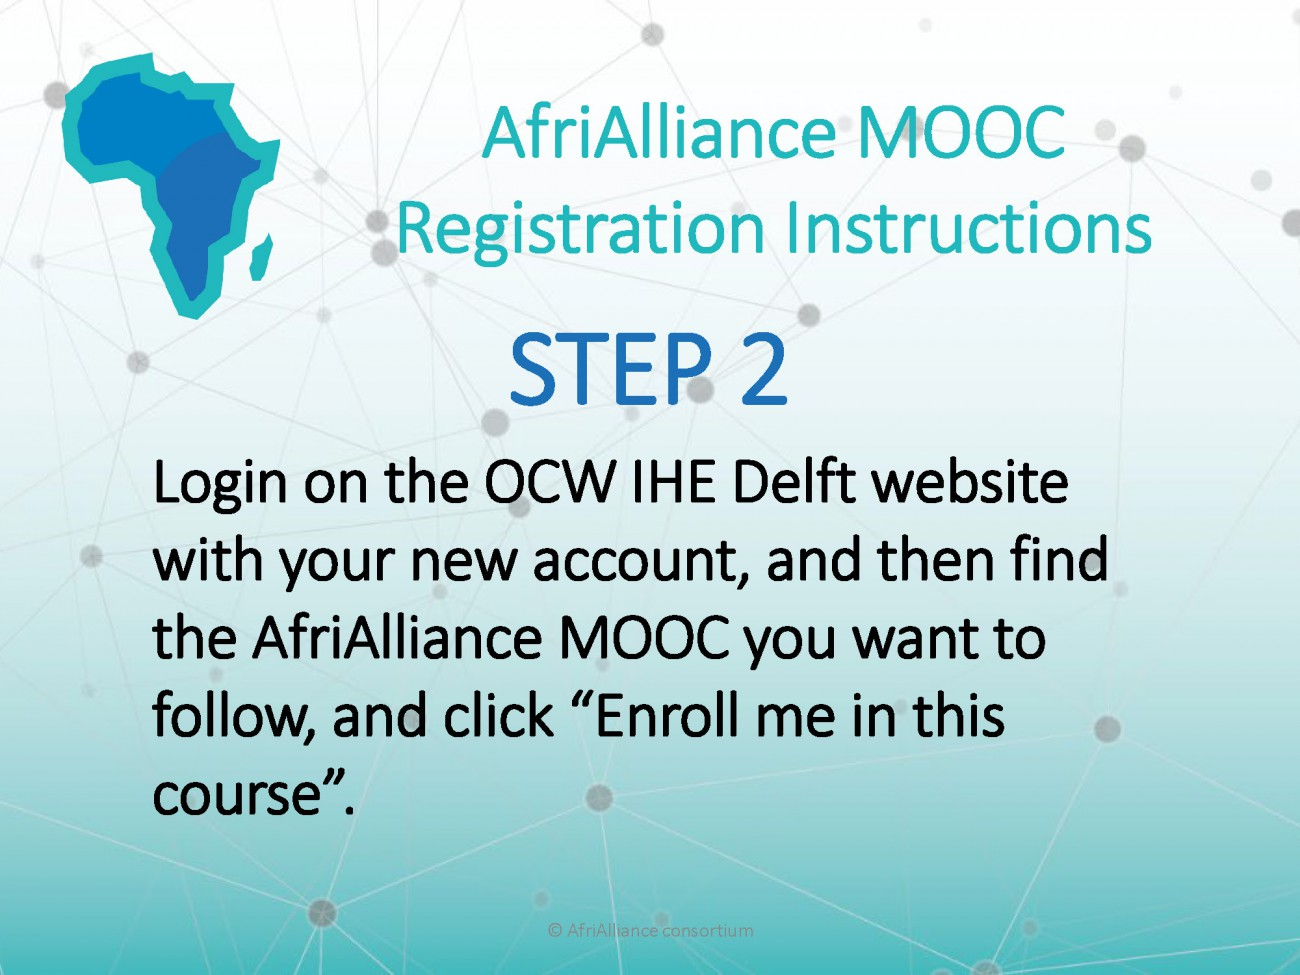 Step 2 of the instructions to enrolling in AfriAlliance MOOCs